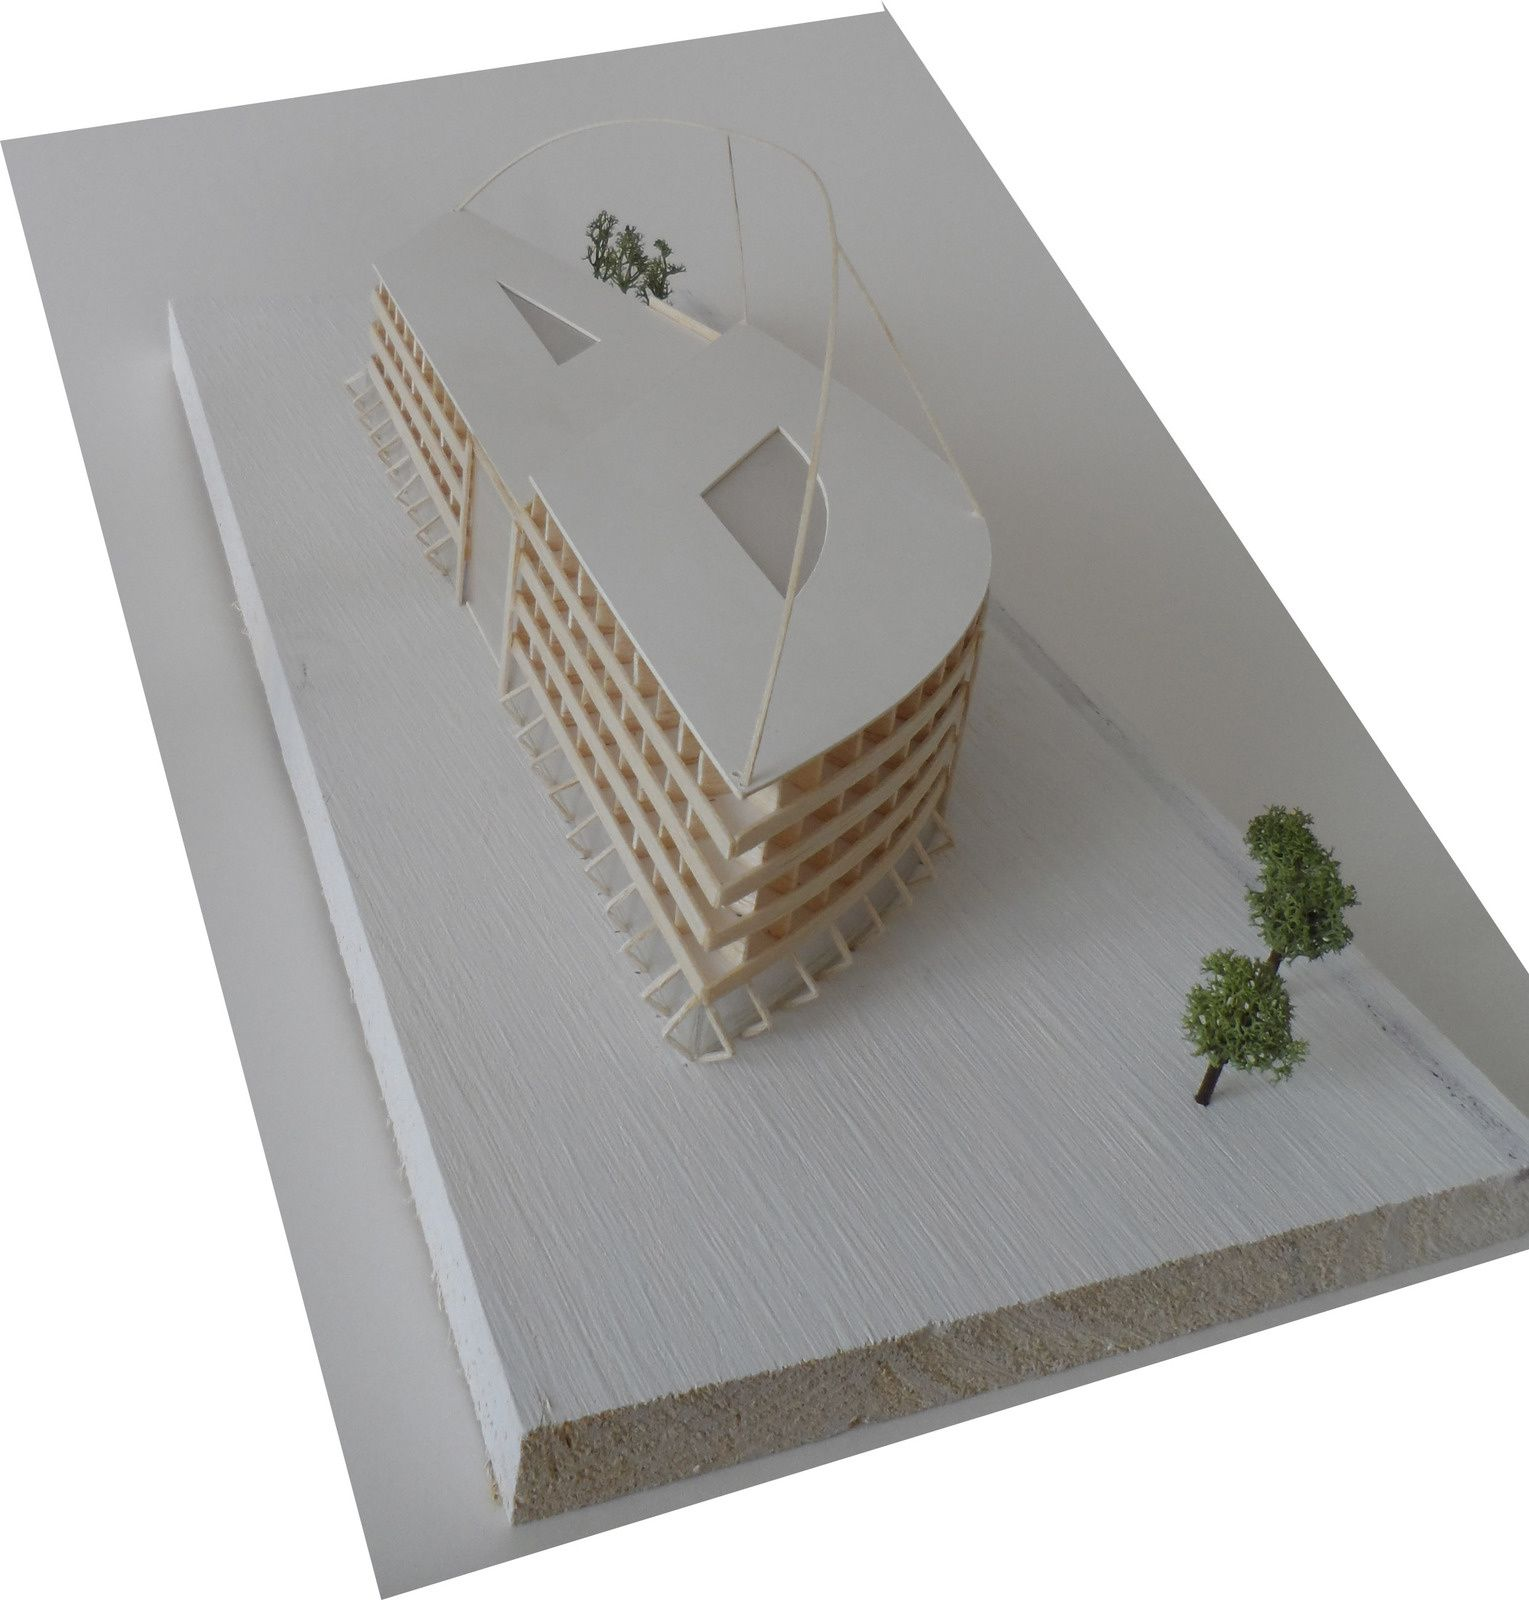 Maquette d 39 architecture thibout paul maquette design for Maquette d architecture